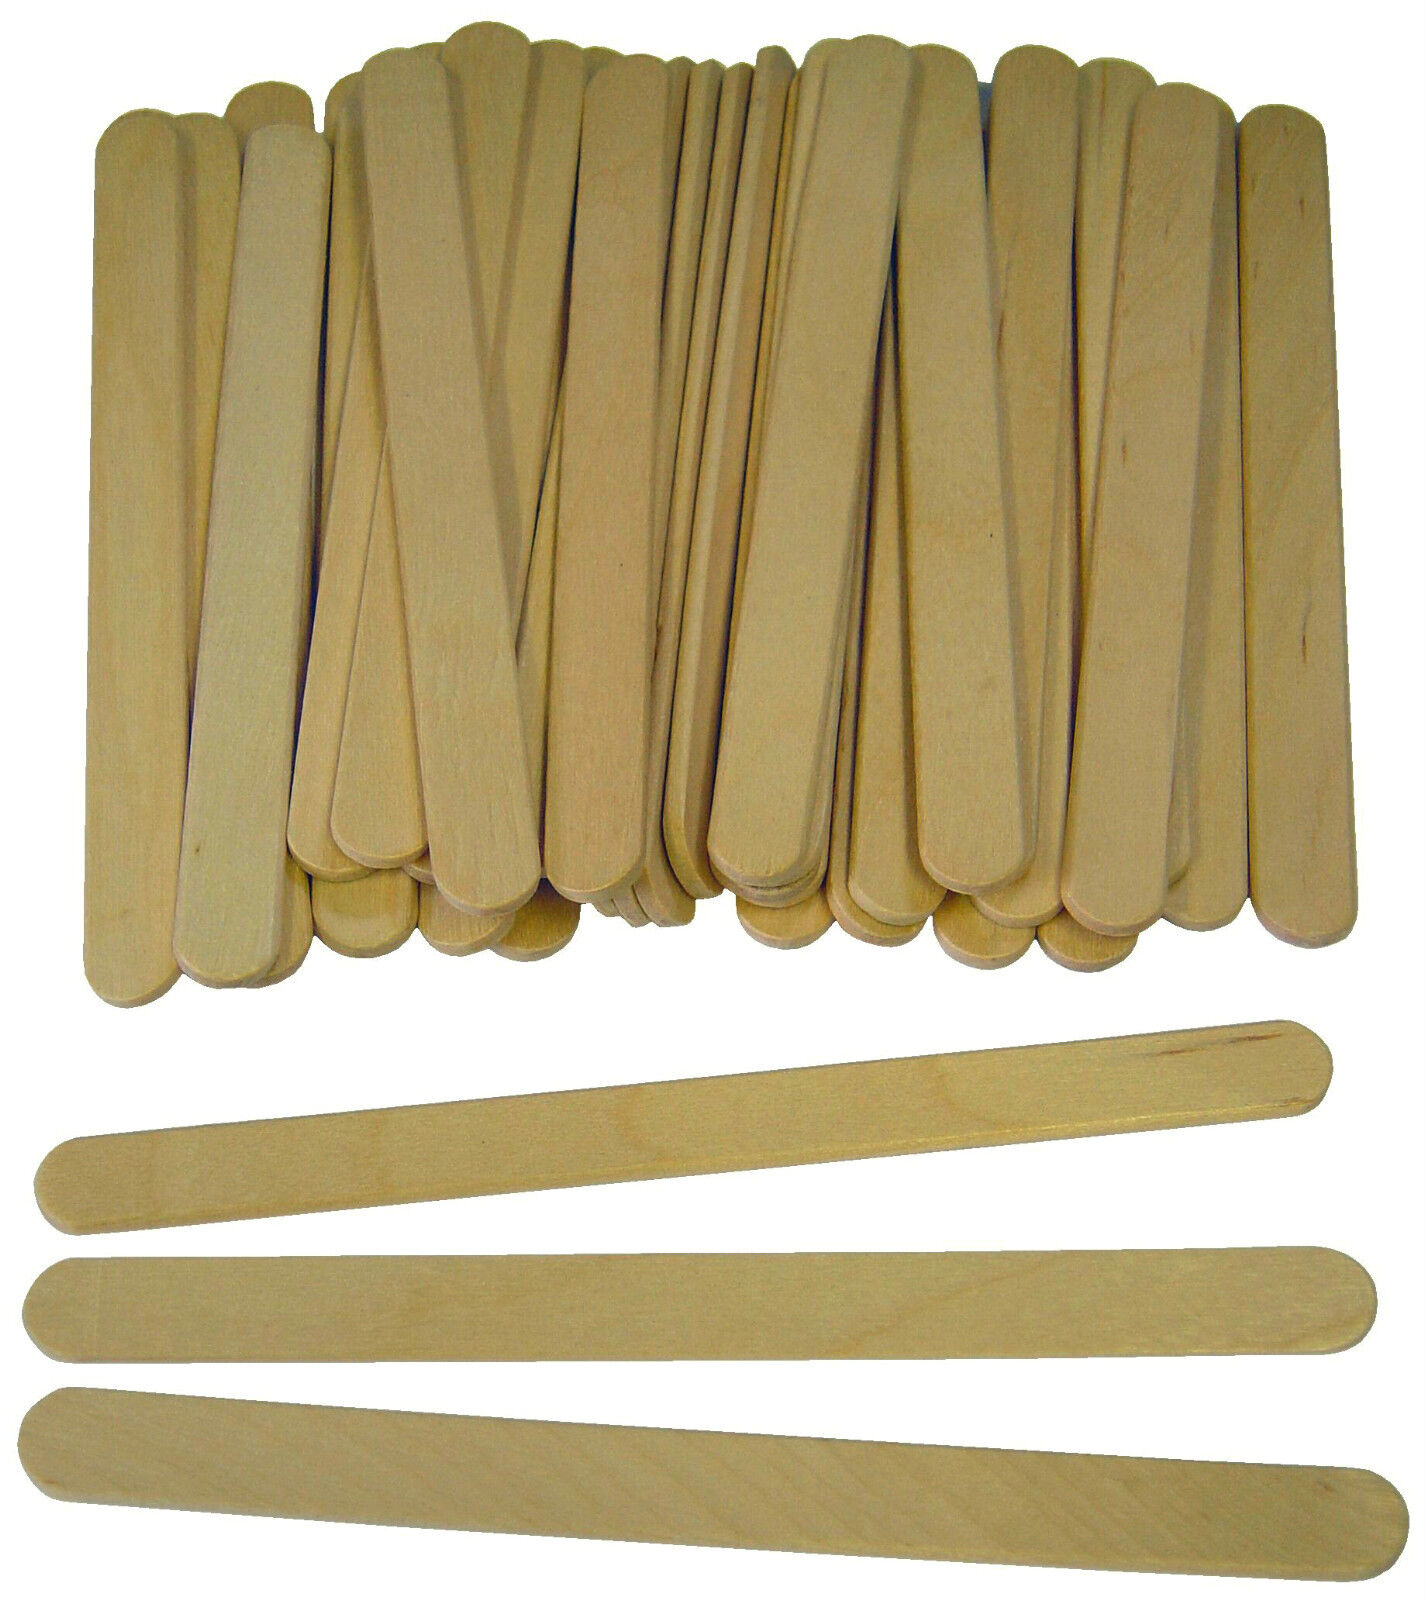 ice lollies 100-6000 Lollipop lolly Wooden sticks Natural craft model making